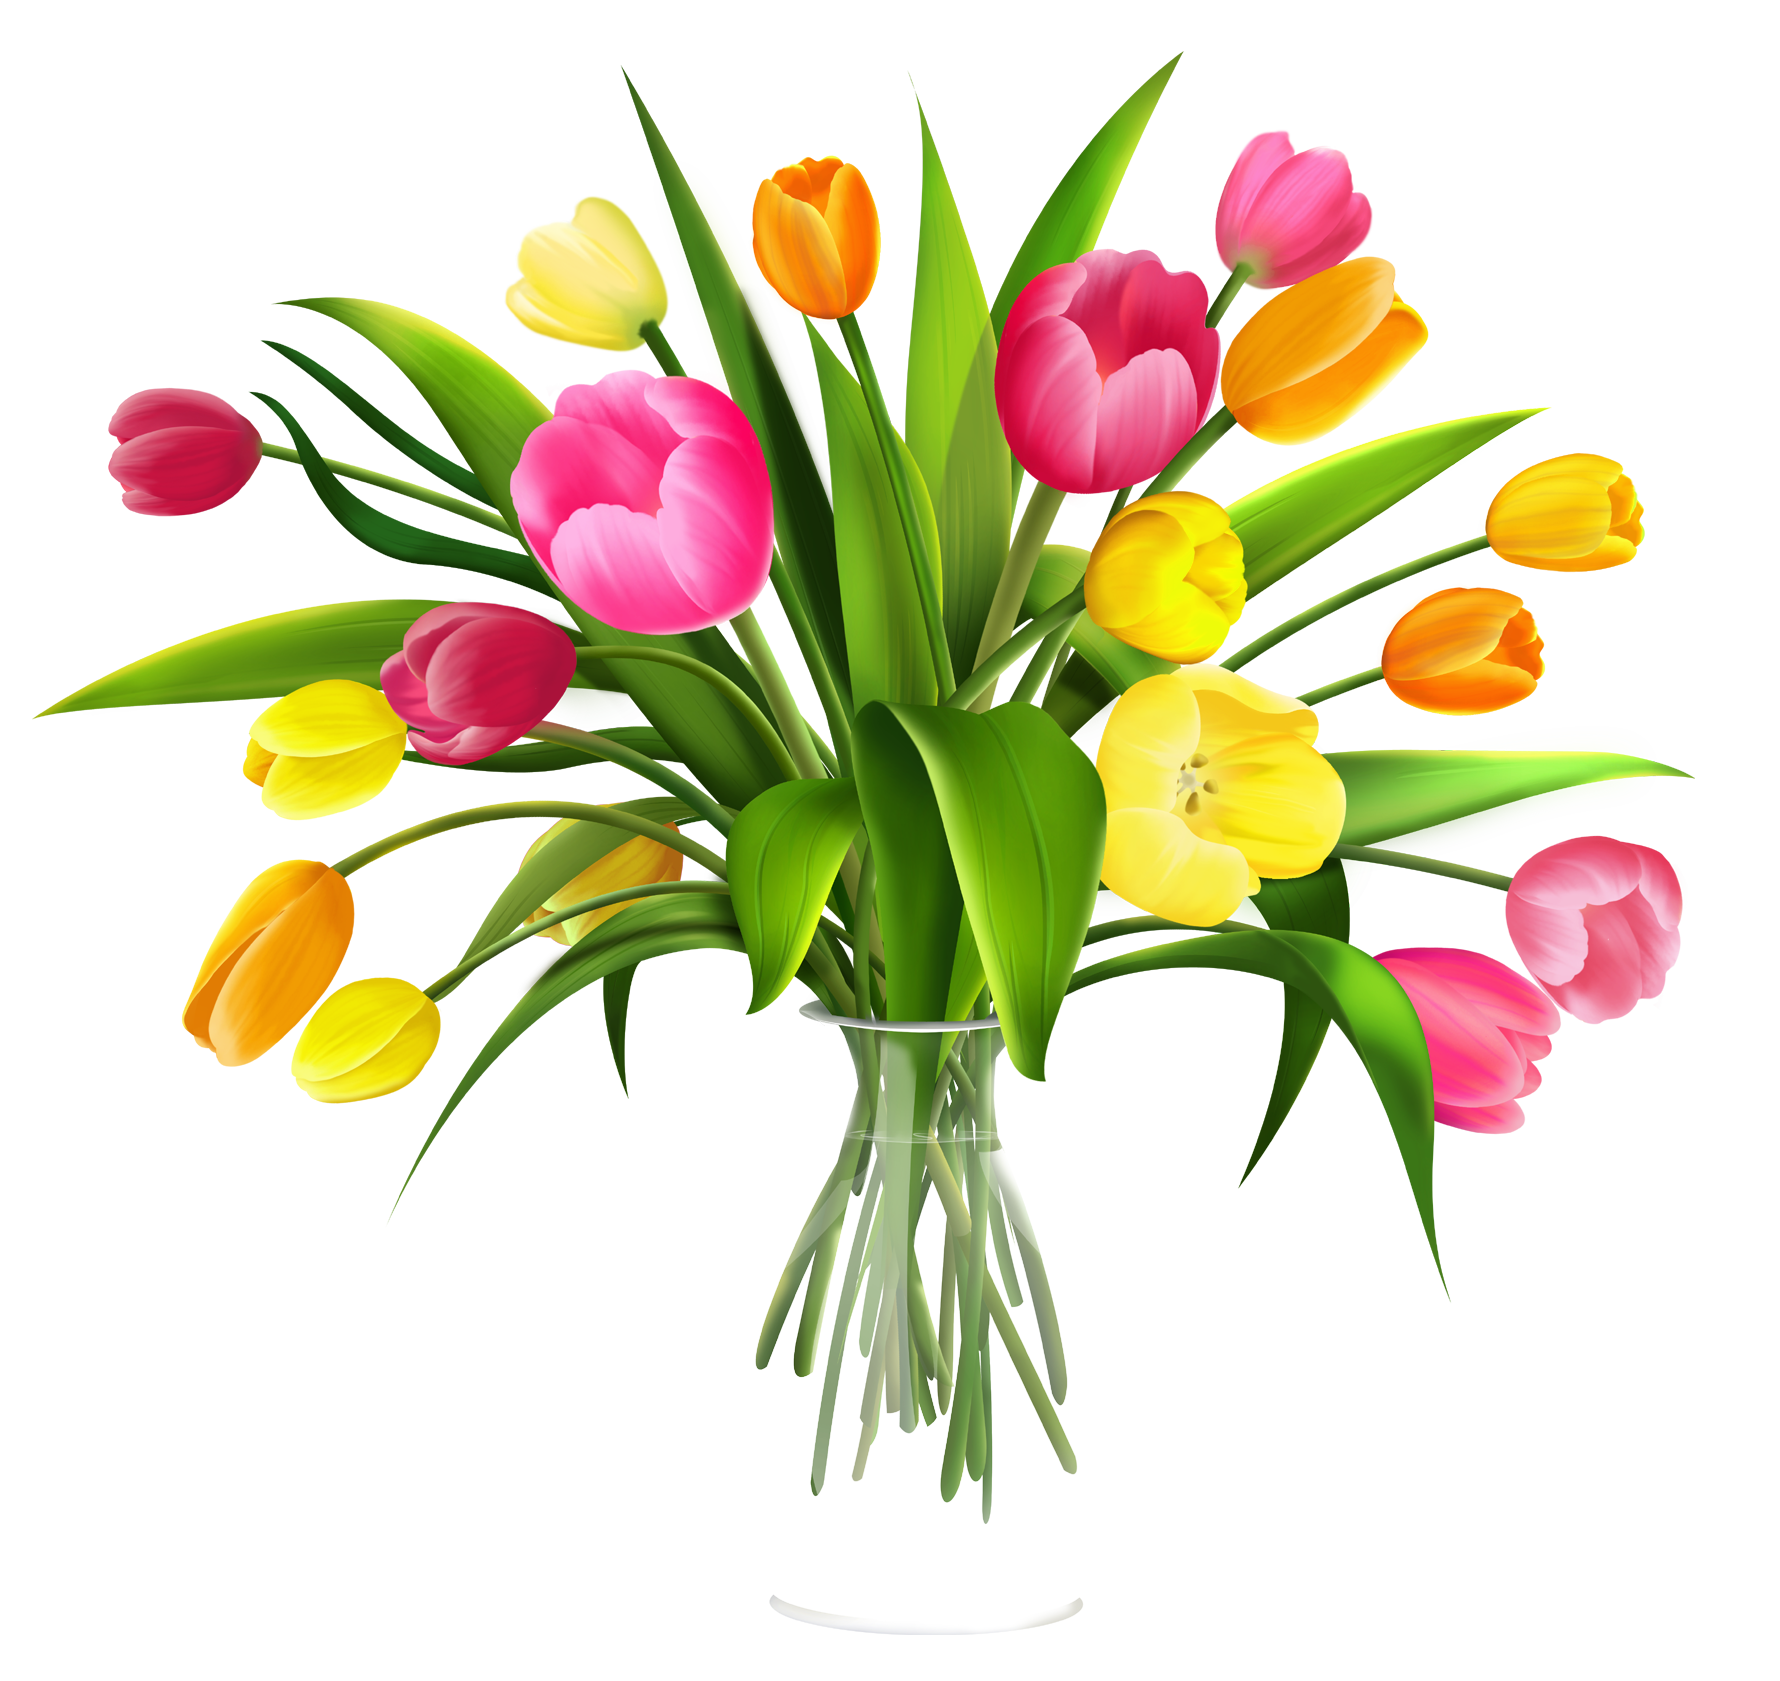 1780x1681 Free Clip Art Flowers In Vase Use These Free Images For Your